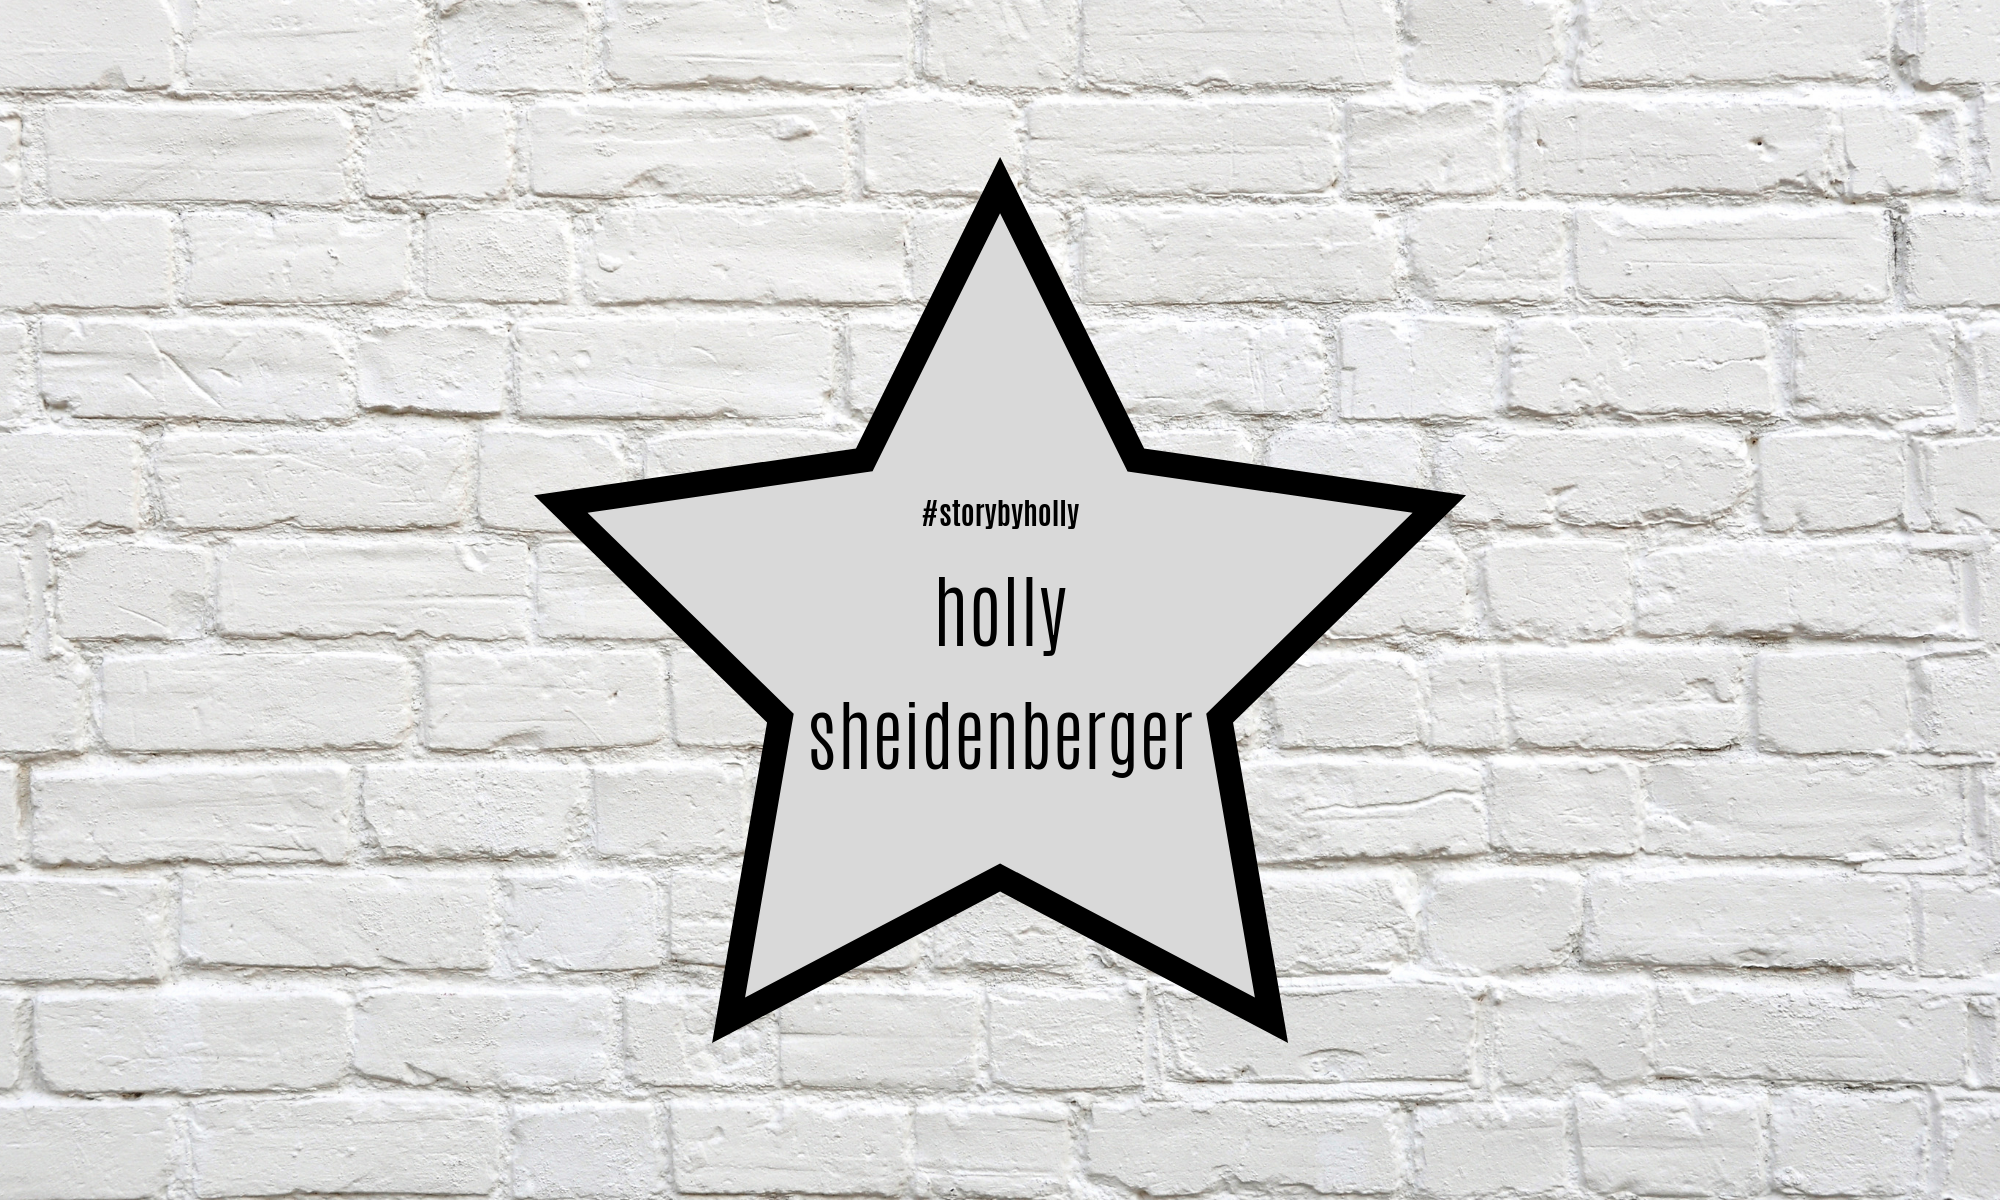 Holly Sheidenberger